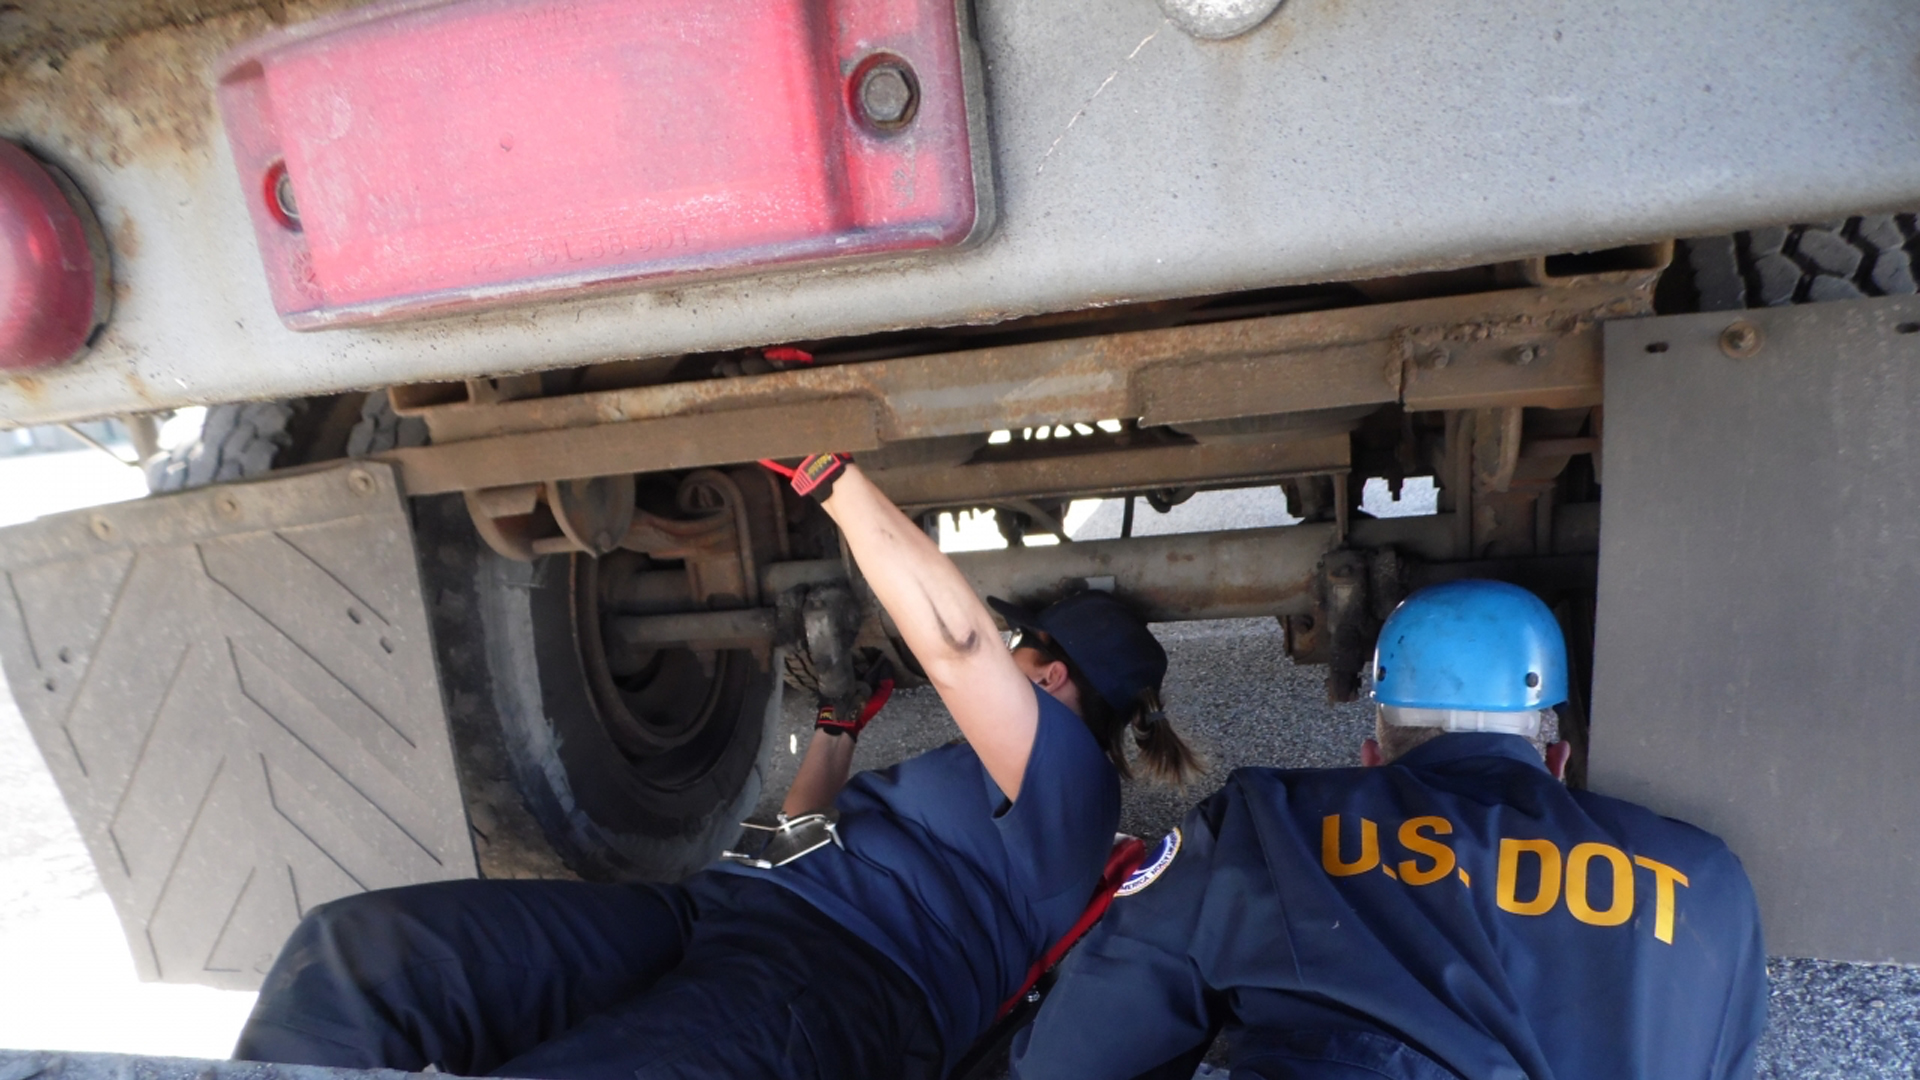 Cleanliness Counts When It Means Fewer DOT Inspections